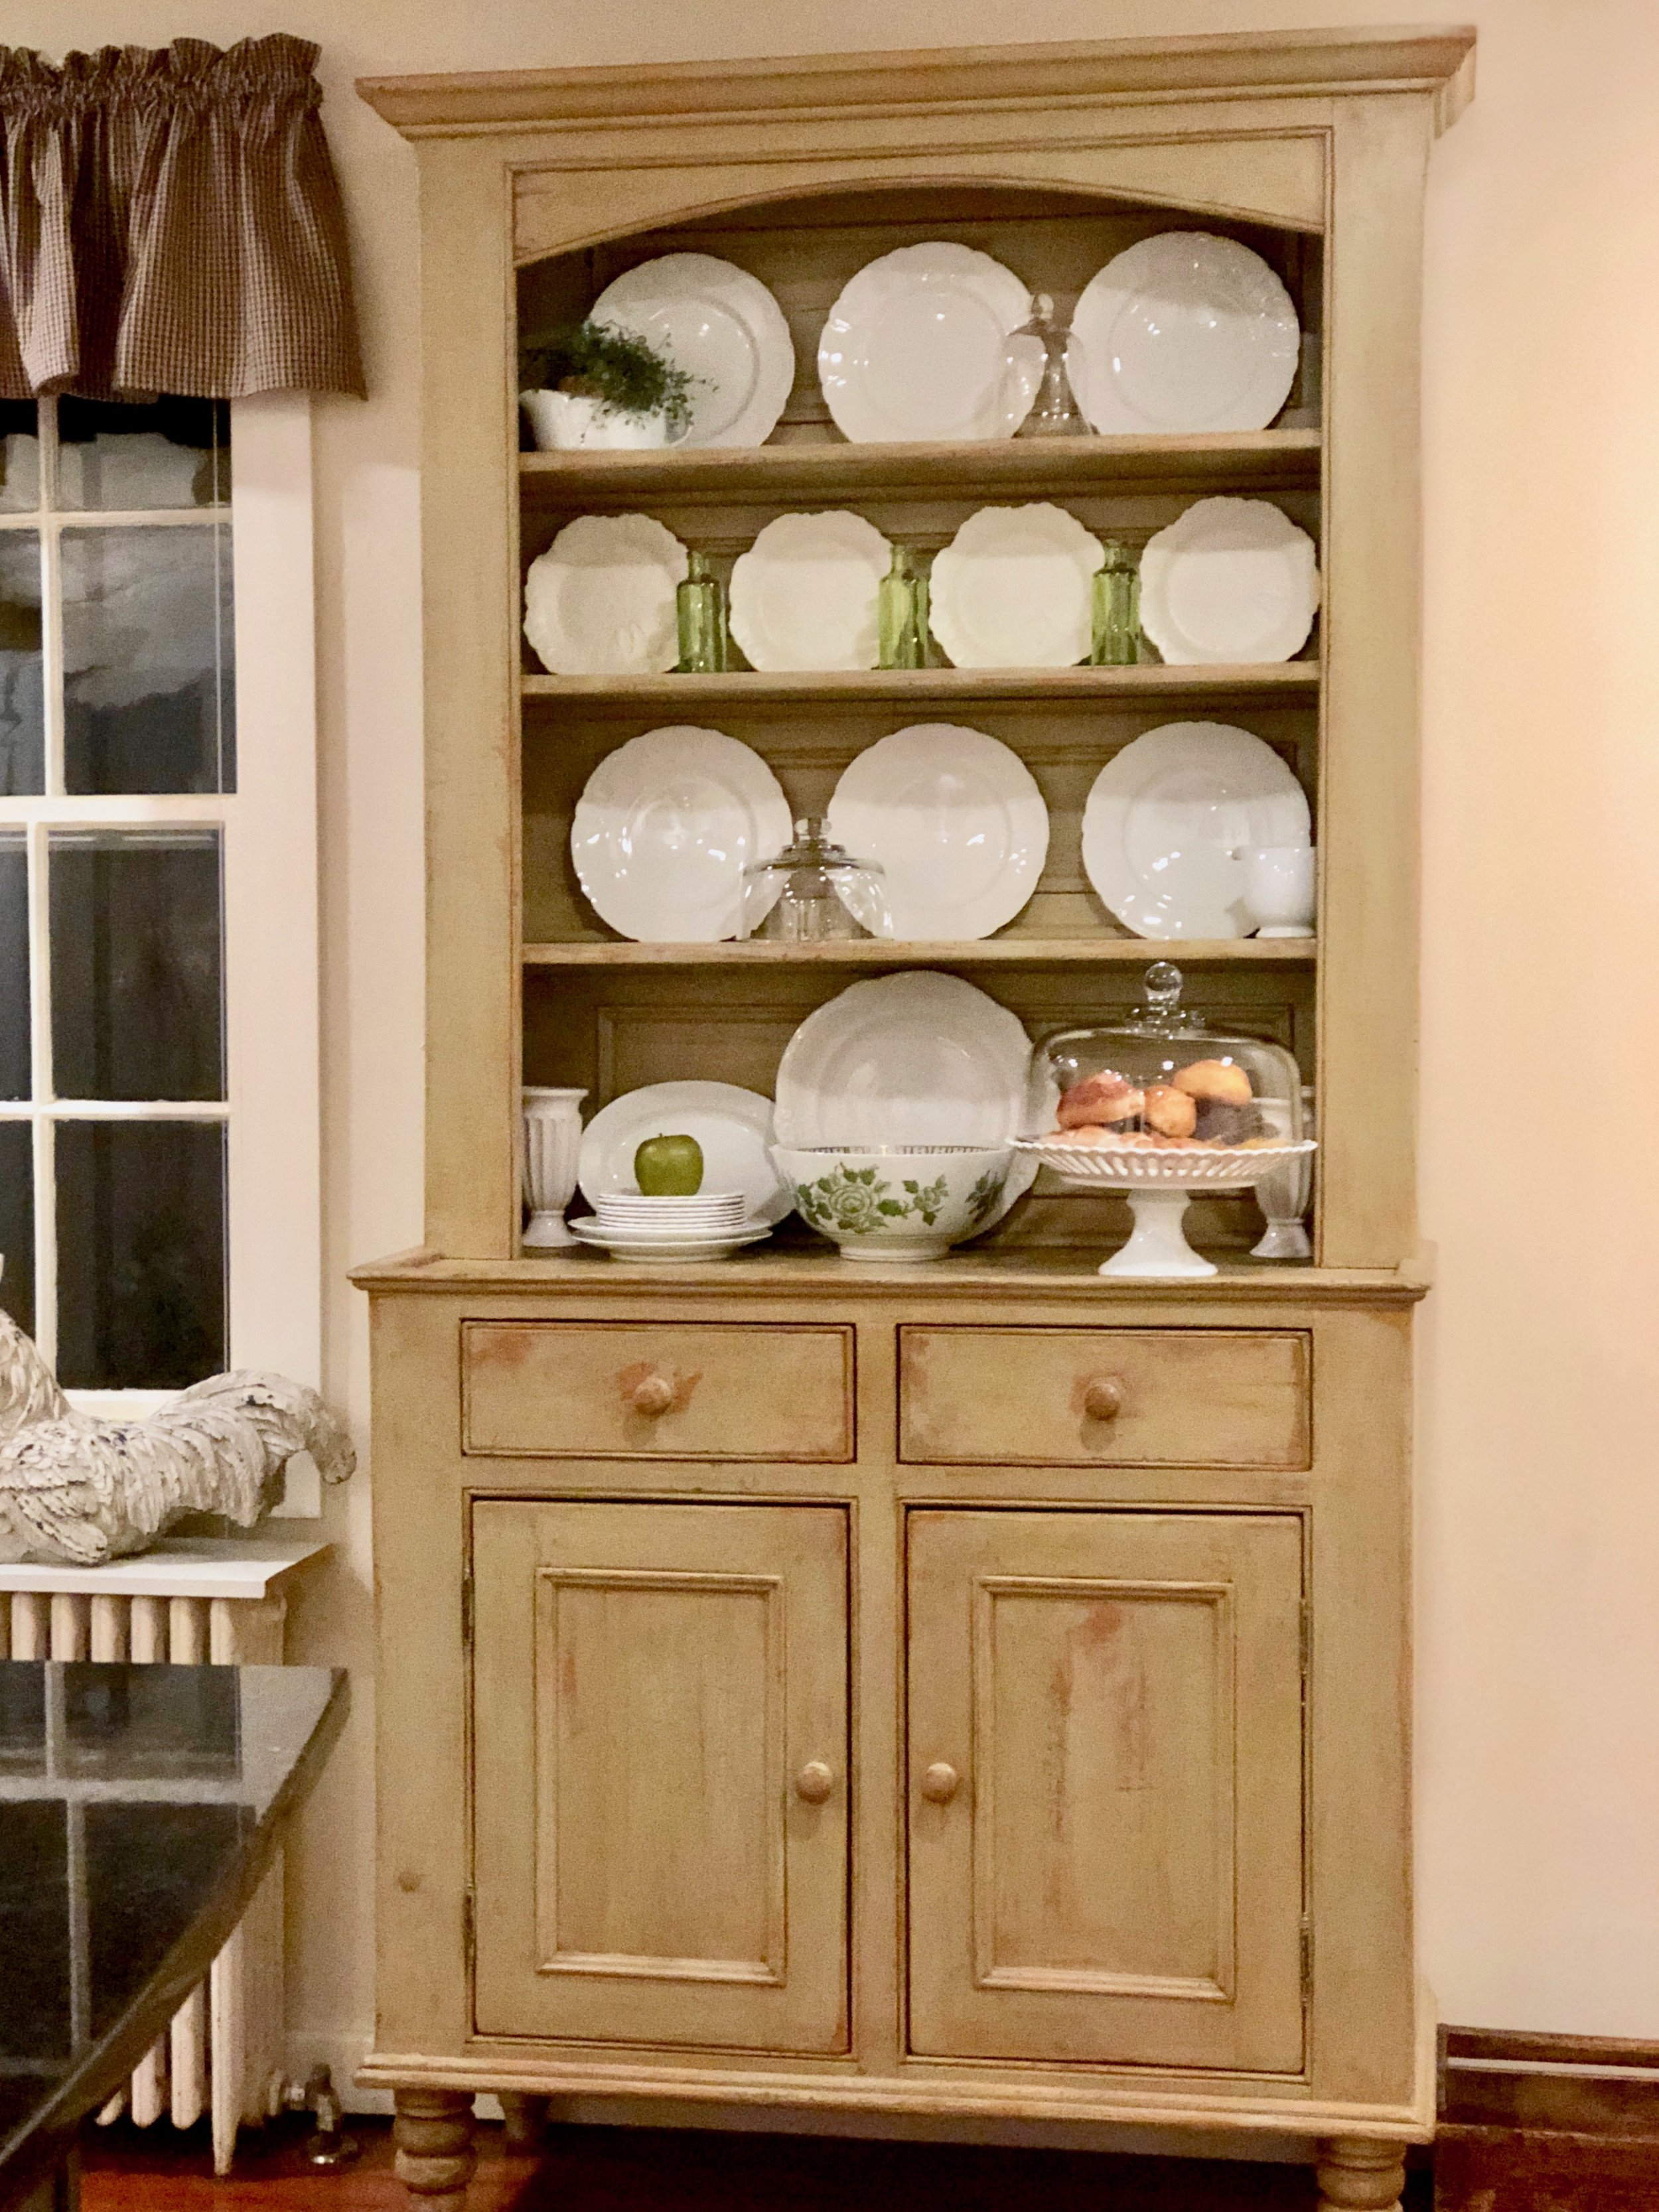 adding green to a kitchen hutch